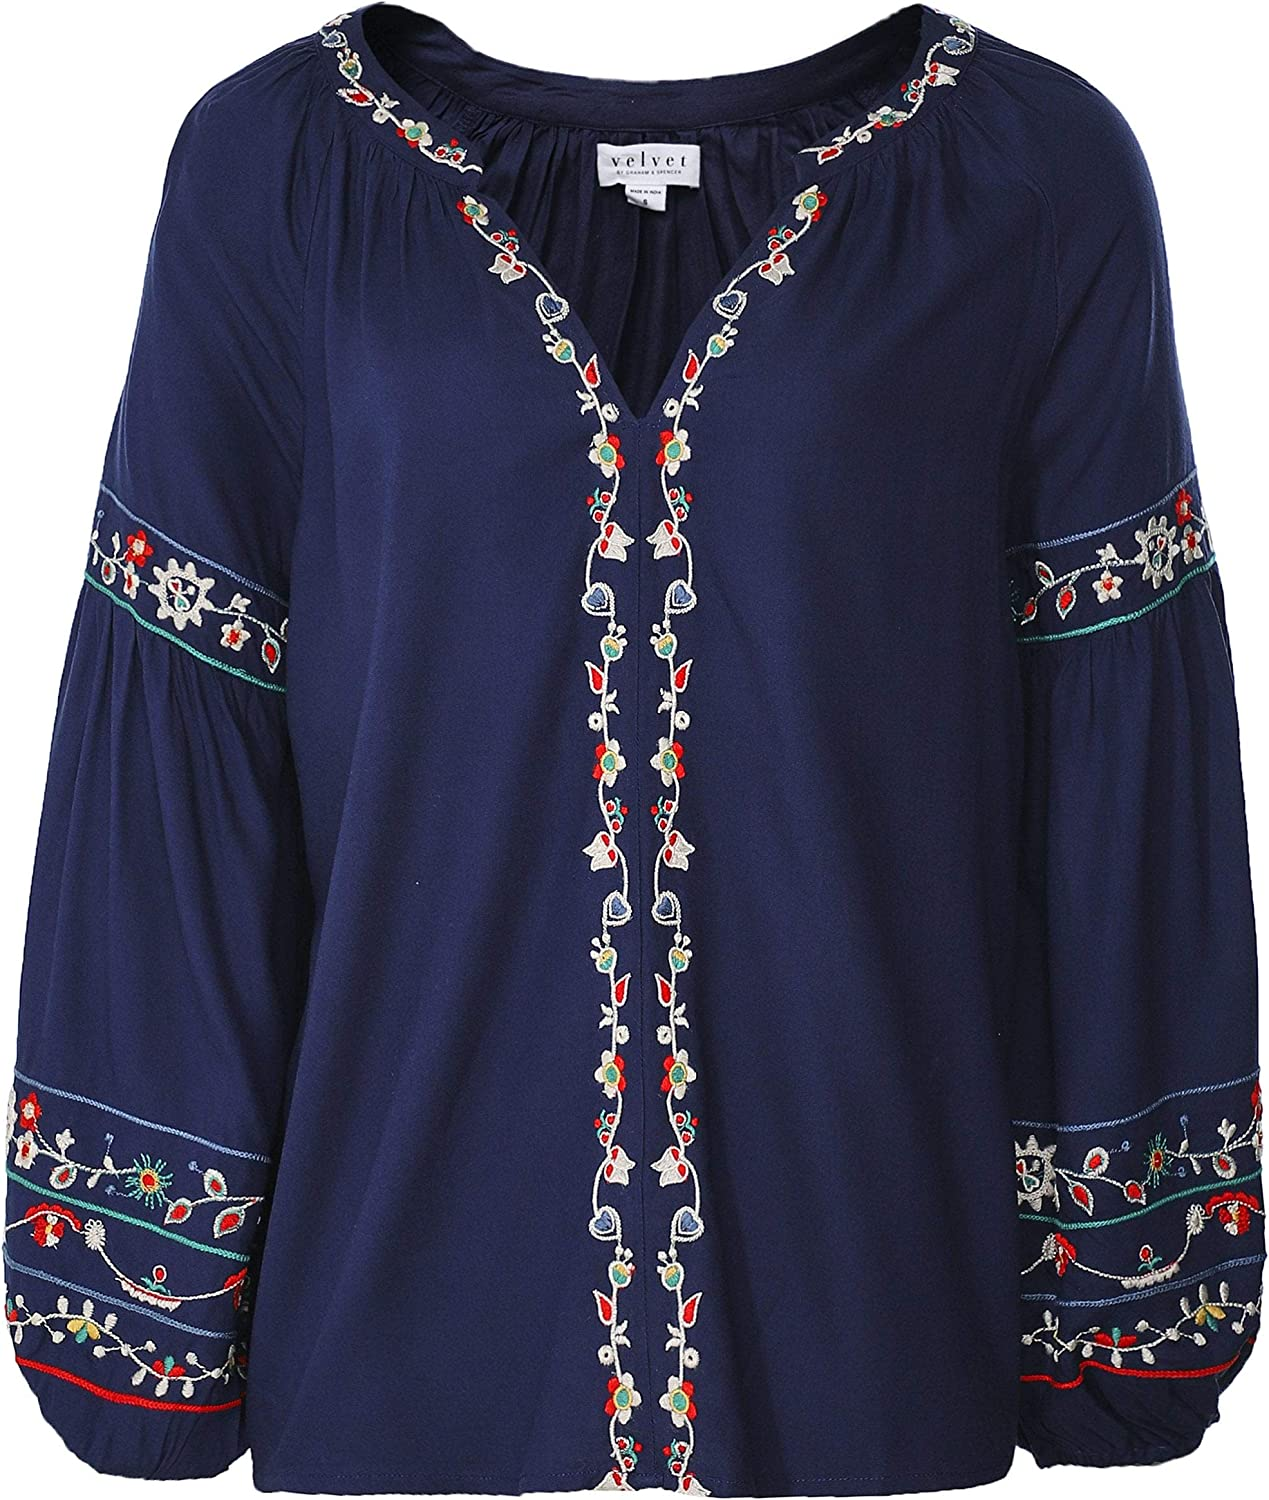 Velvet by Graham and Spencer Women's Carina Embroidered Peasant Top Navy